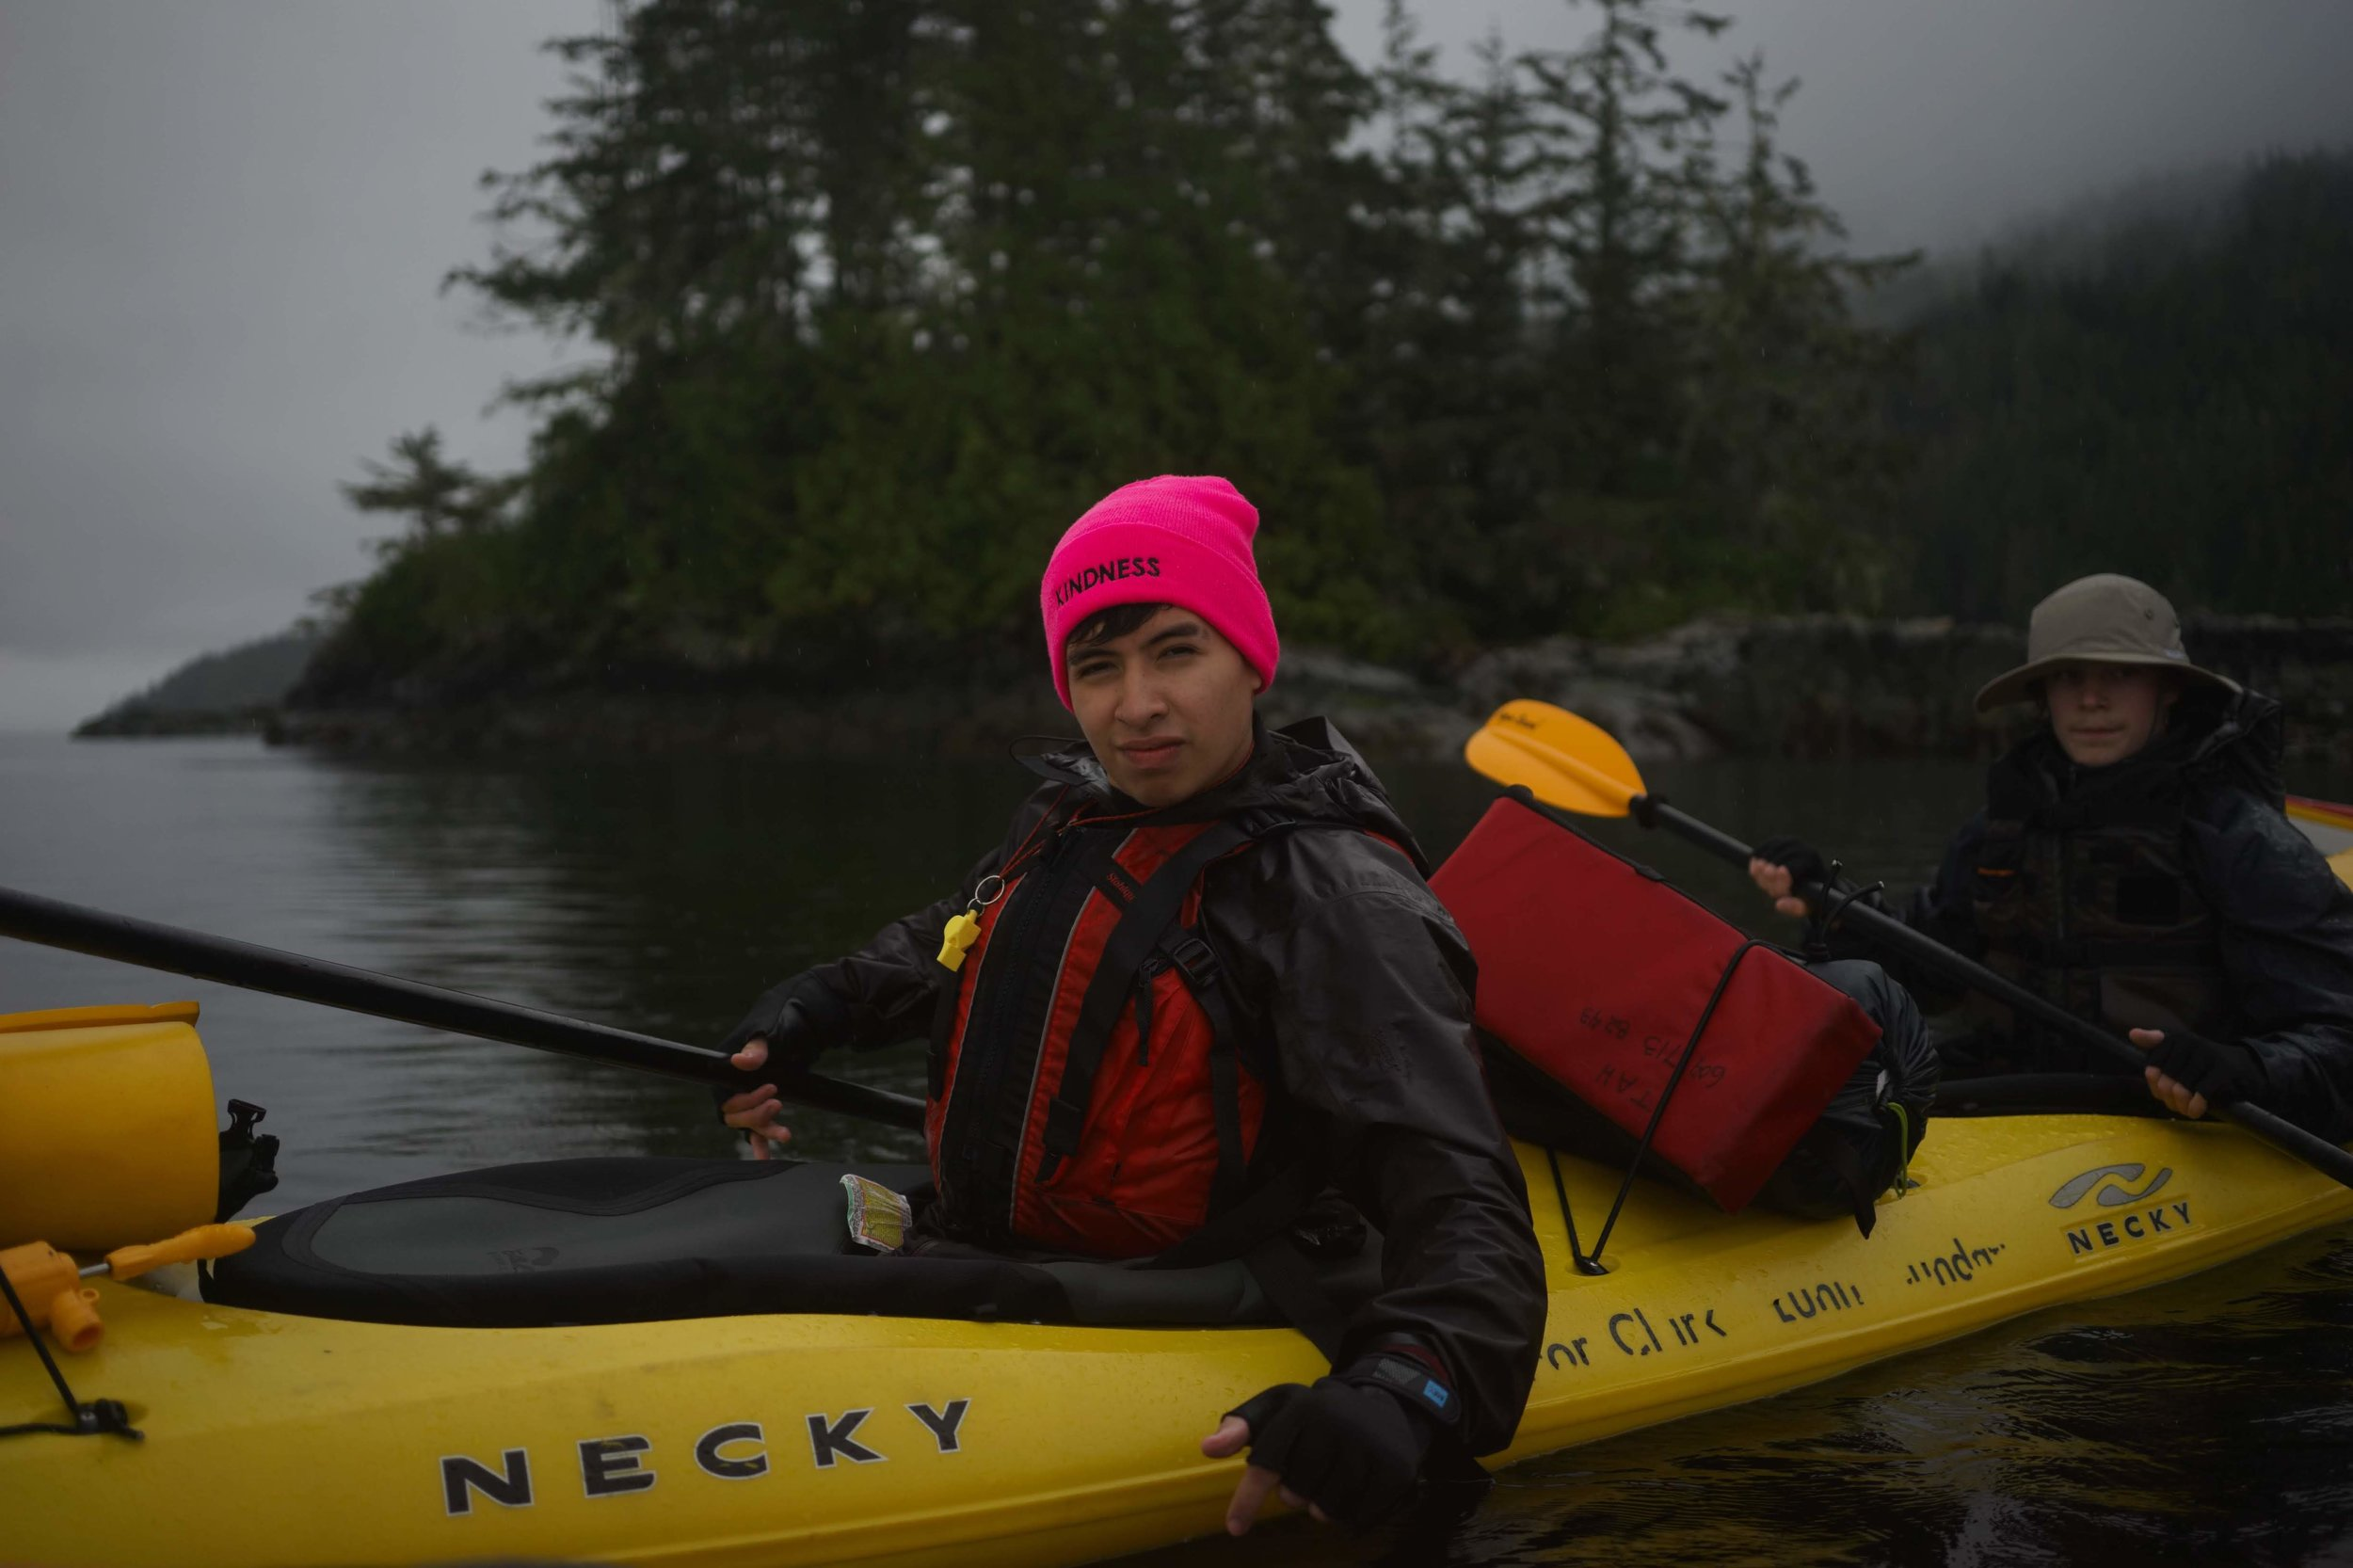 Kayak in the rain.jpg